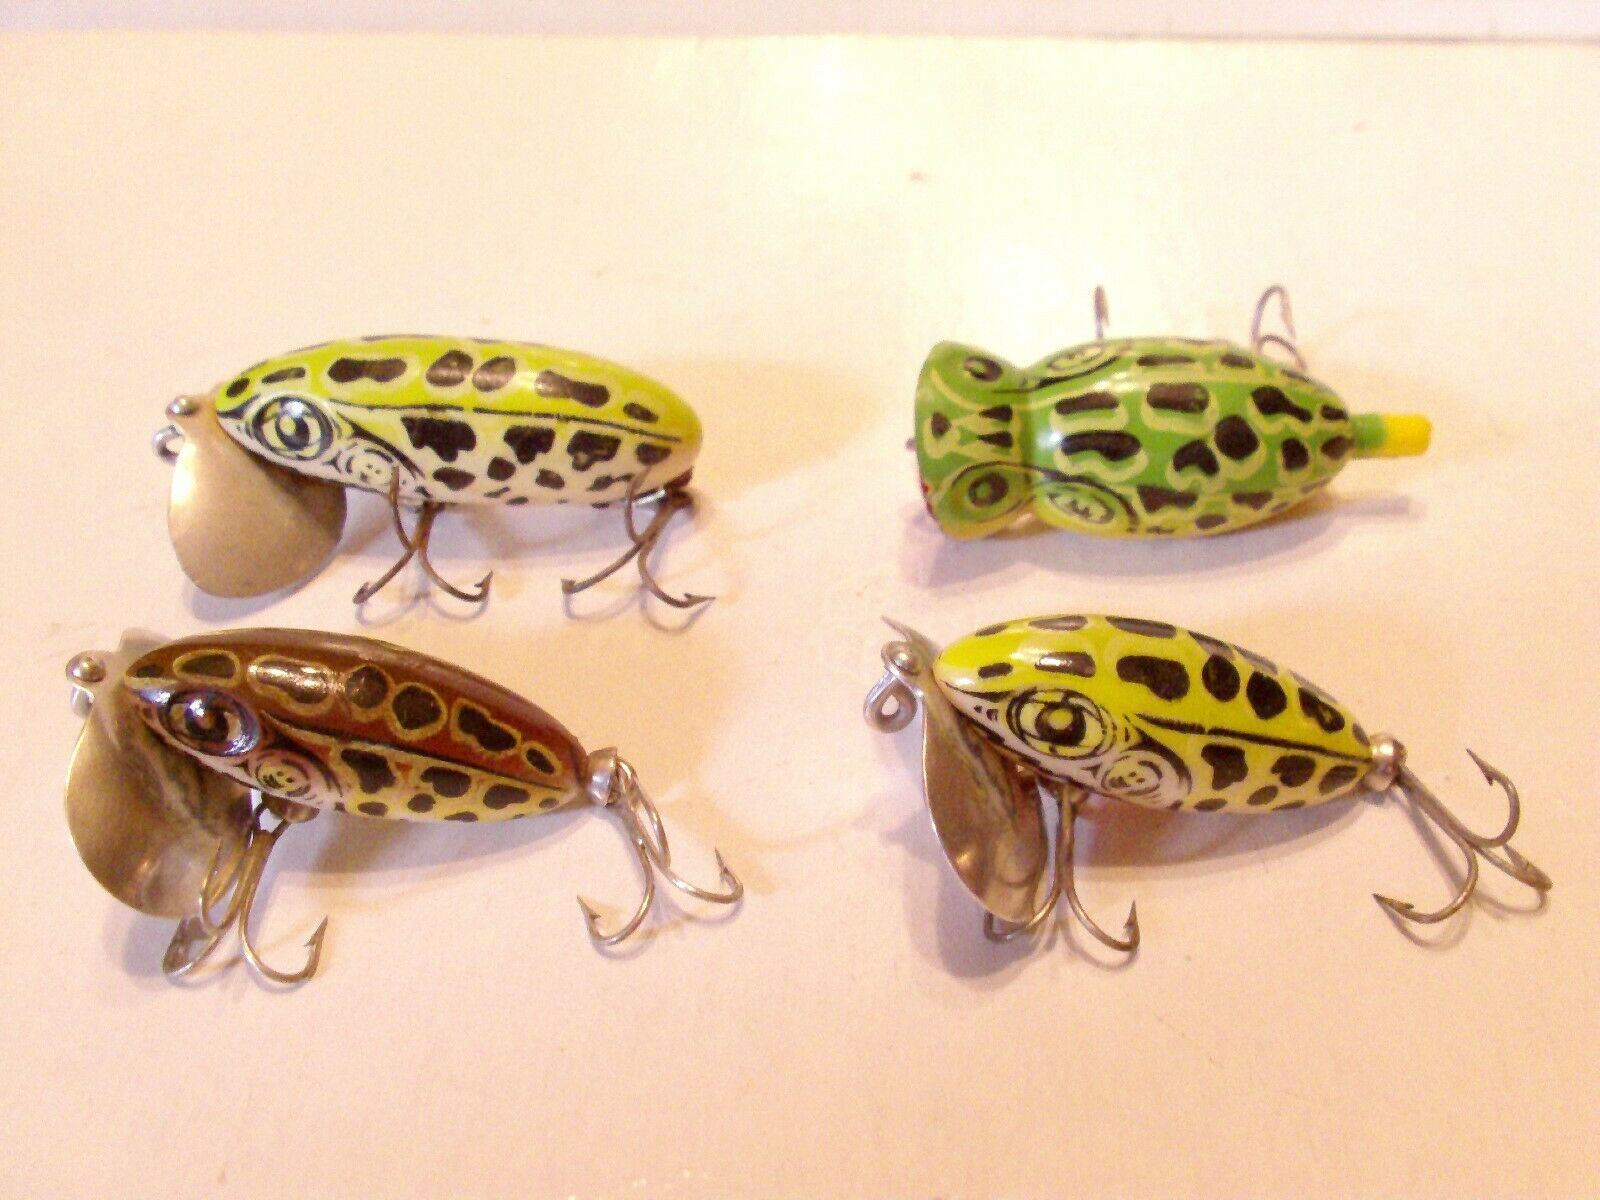 VINTAGE 4 FRED  ARBOGAST 3 JITTERBUG, 1 HULA POPPER NATURAL FROG FISHING LURE  customers first